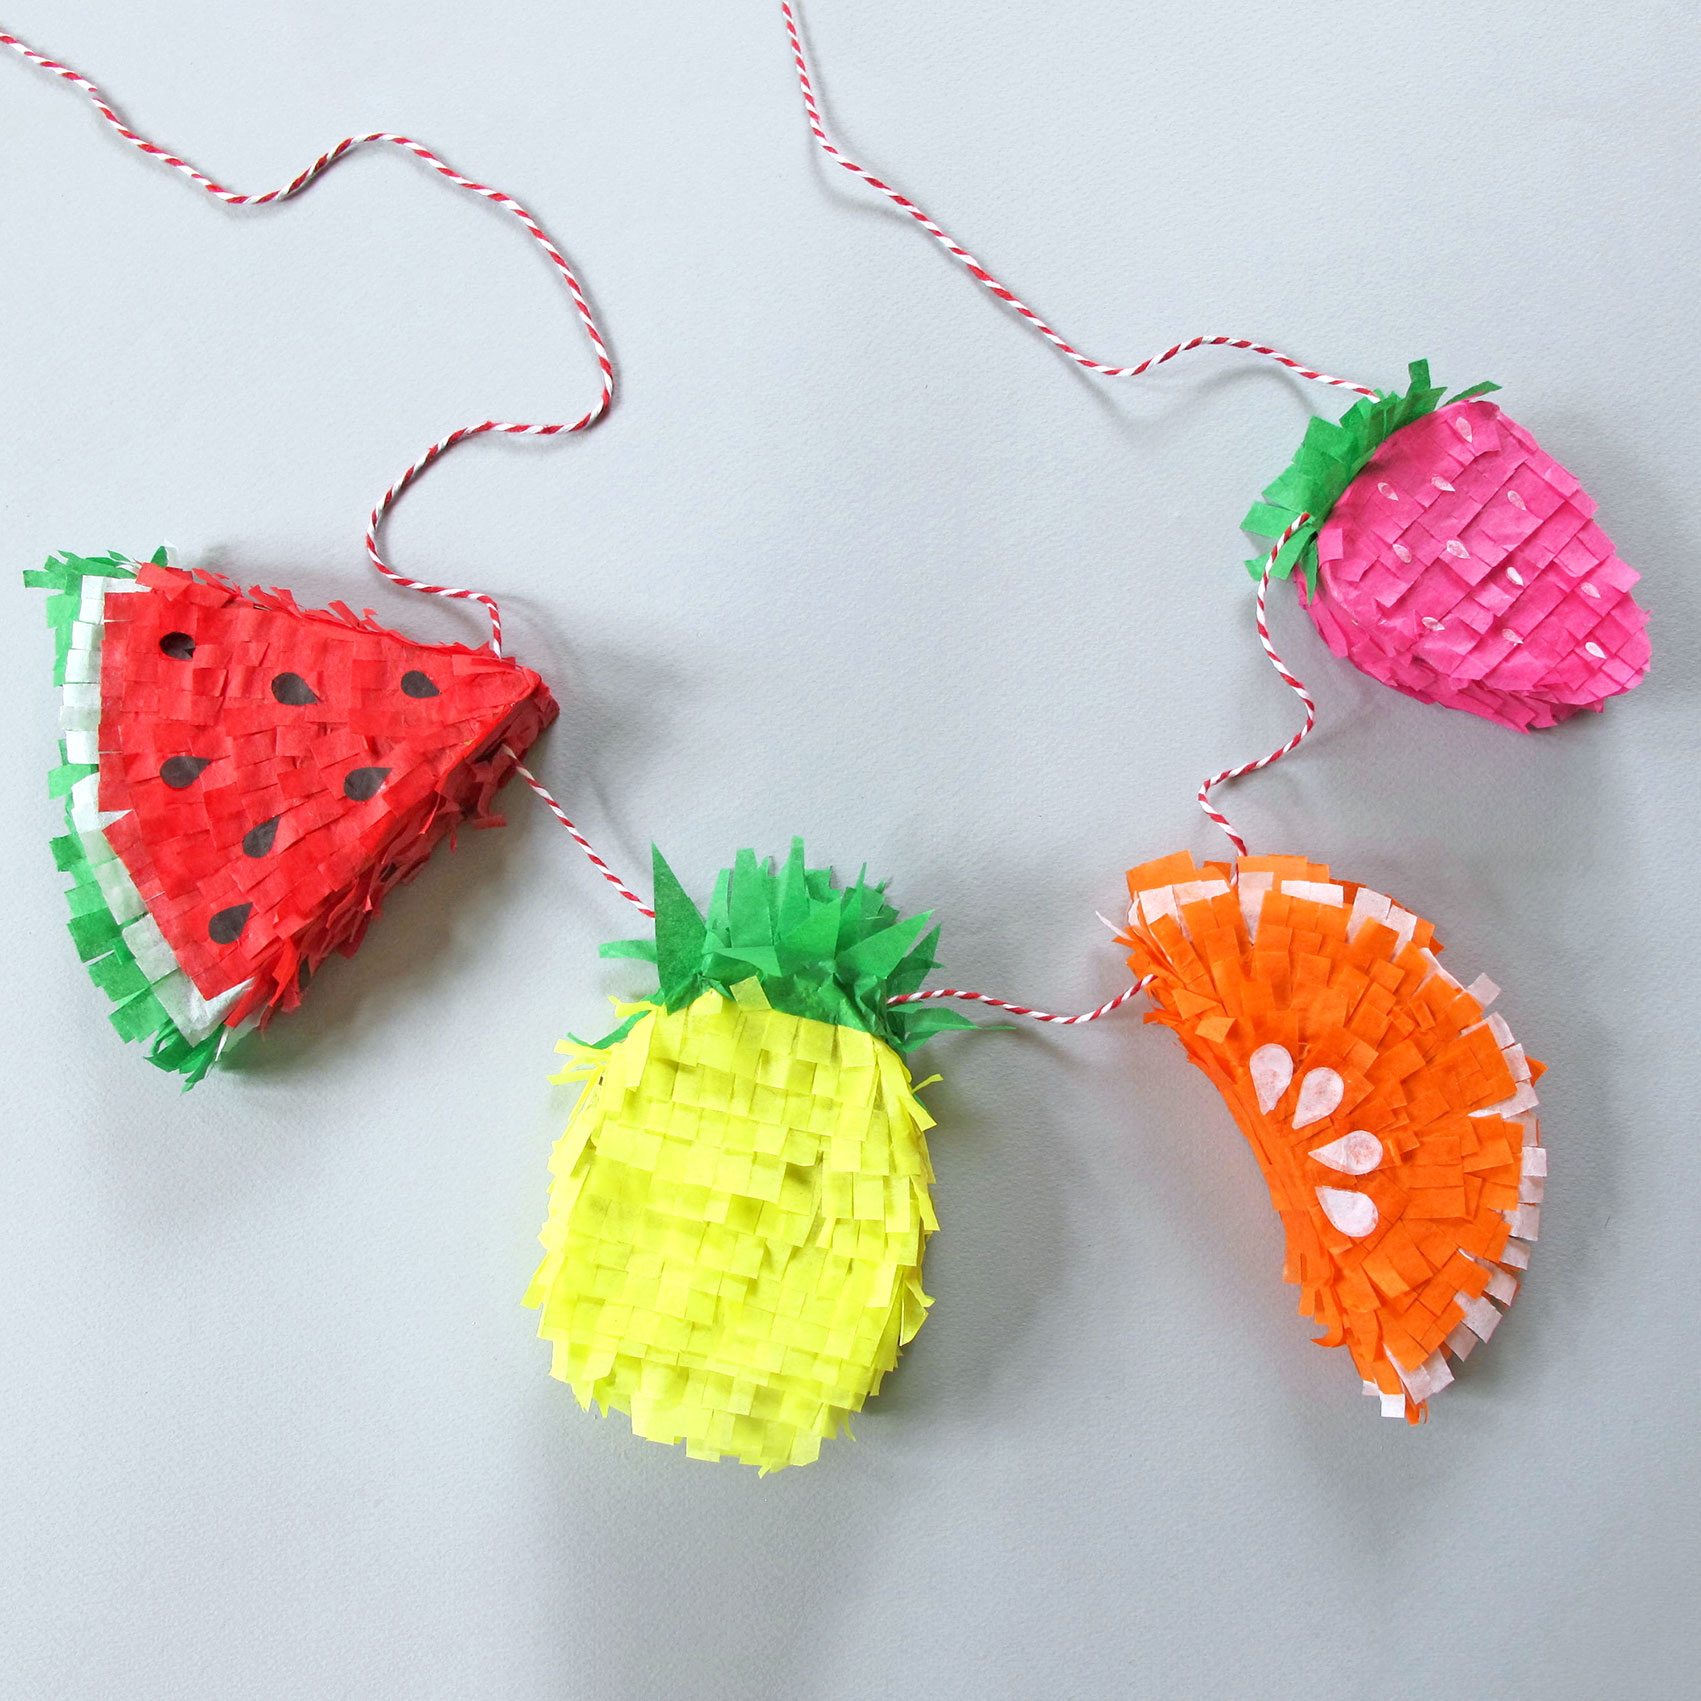 PAPERCHASE-TROPICAL-PINATTA-HOW-TO-CRAFT-FRUIT